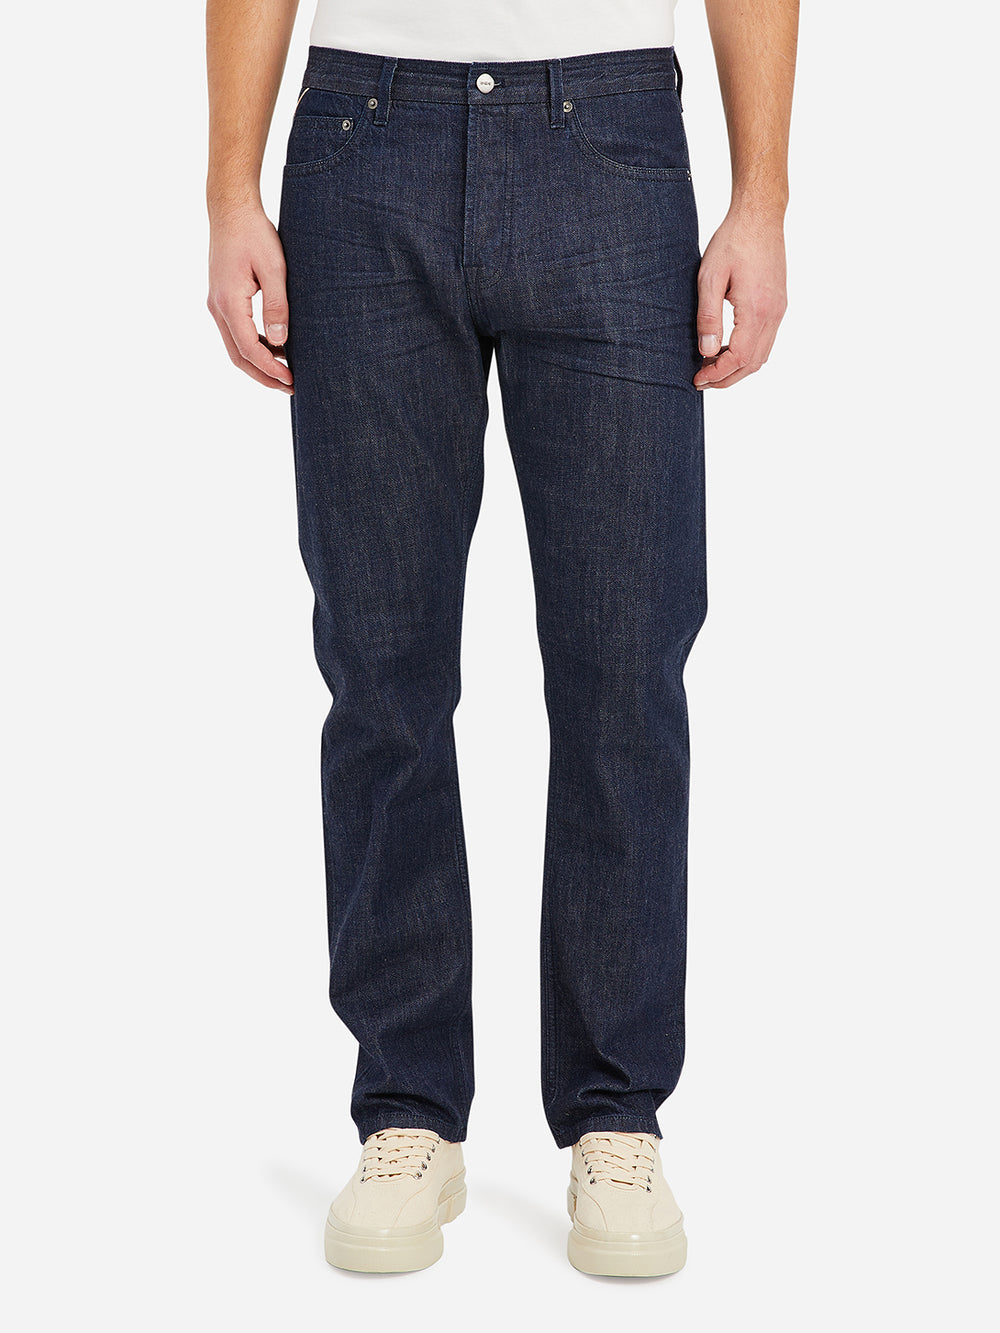 Dark Indigo Denim Missions Men's cotton pants ONS Clothing